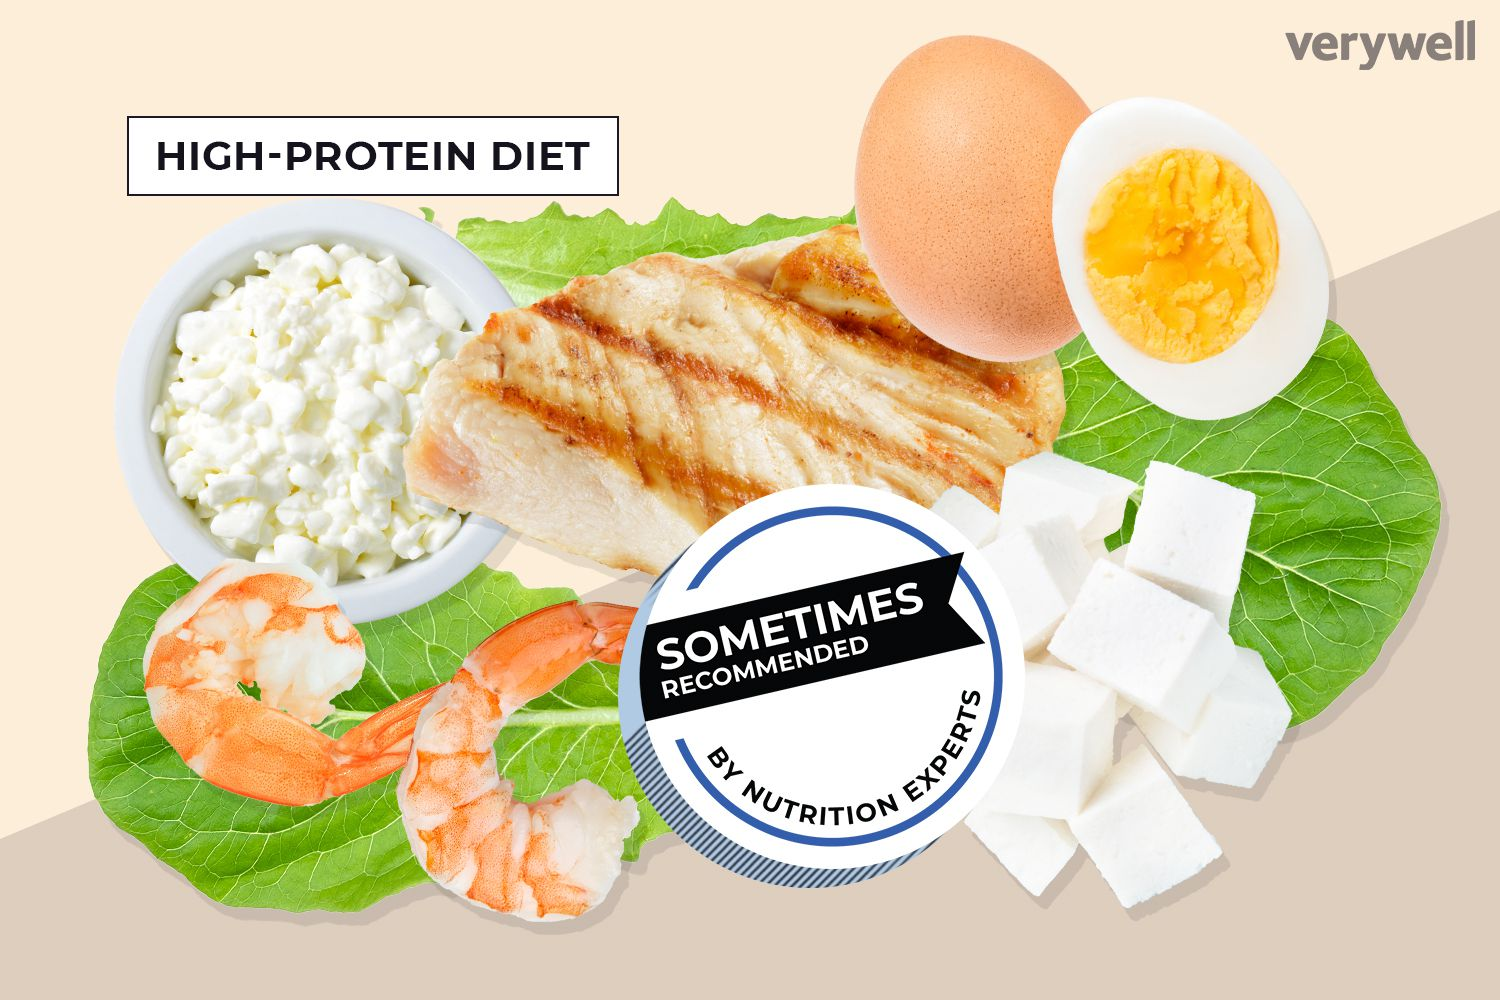 high protein diets and calcium loss